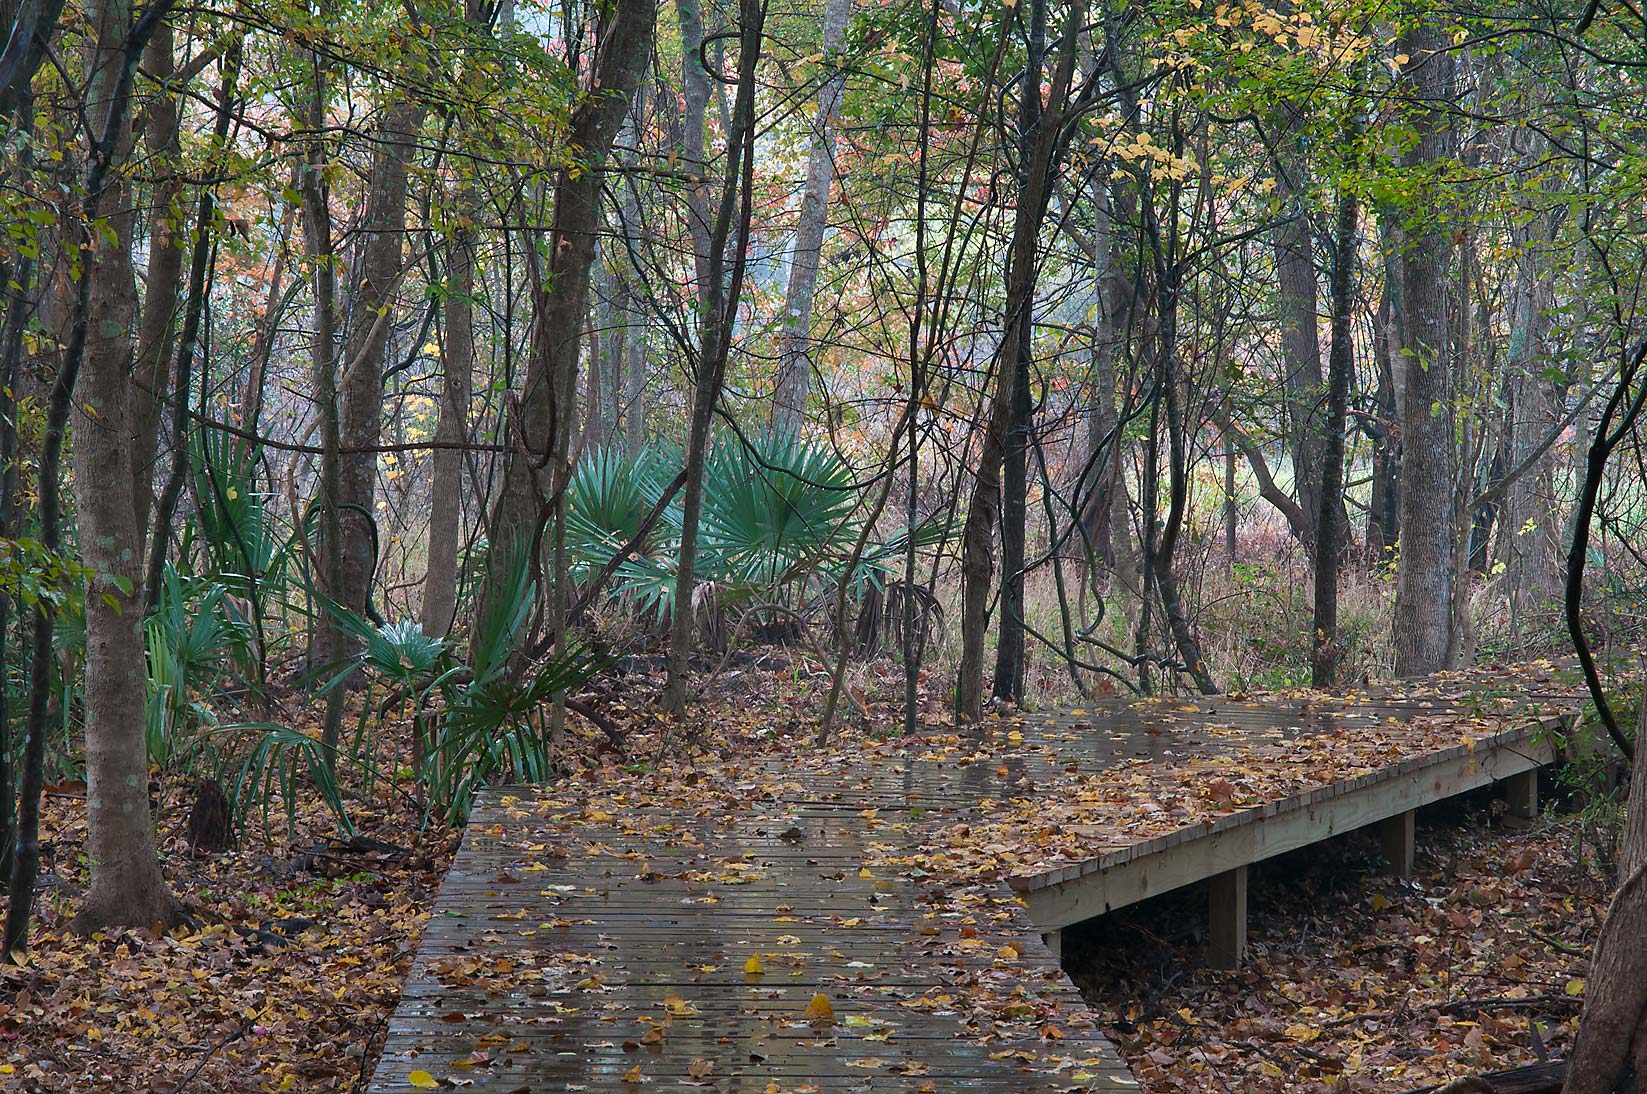 Boardwalk of Chinquapin Trail across Alligator...Huntsville State Park at rain. Texas